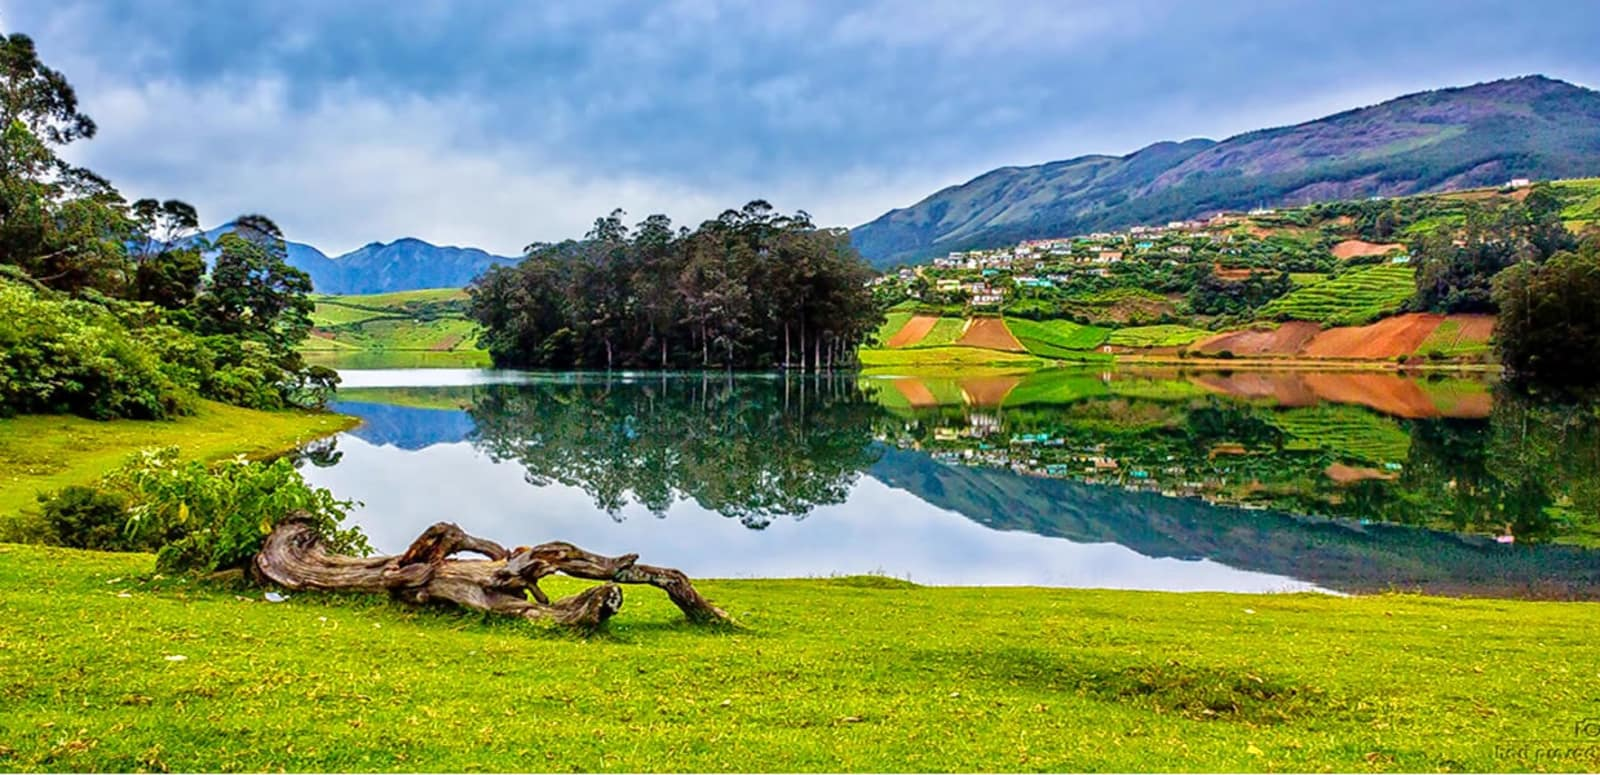 Ooty Travel Guide - Best Places to Visit